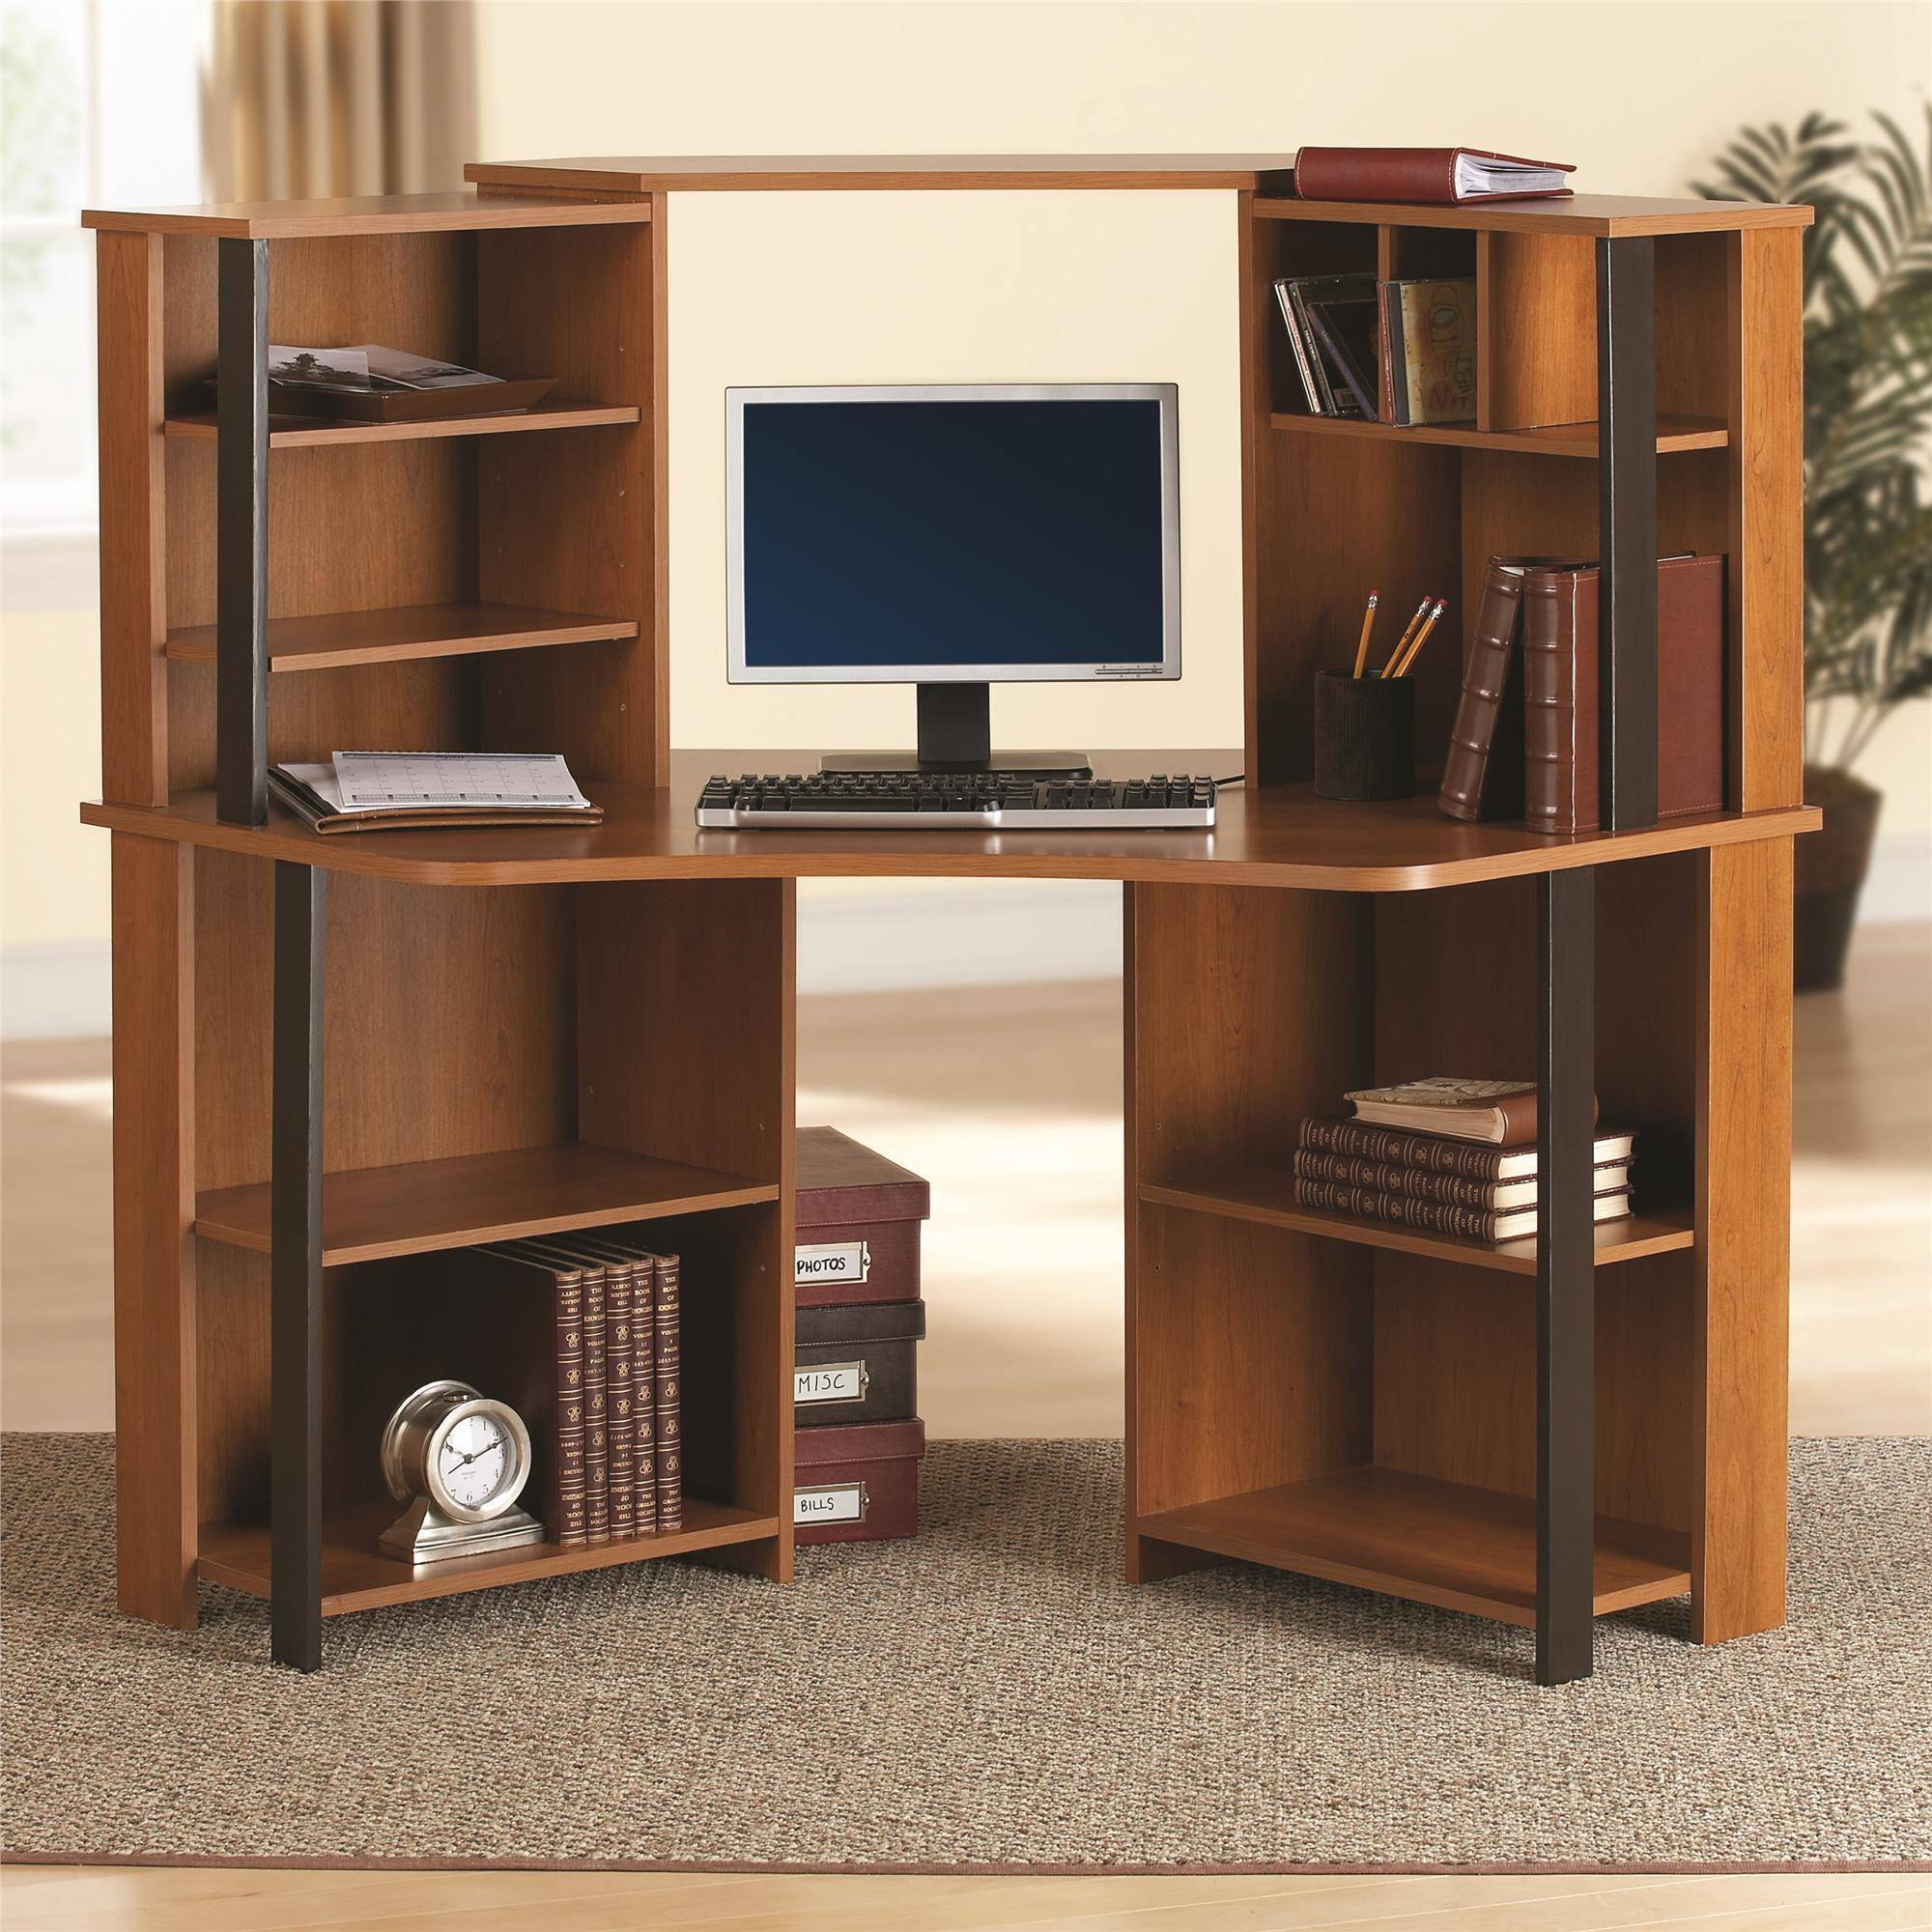 costway corner computer desk laptop writing table wood workstation home  office furniture GLWJCFA